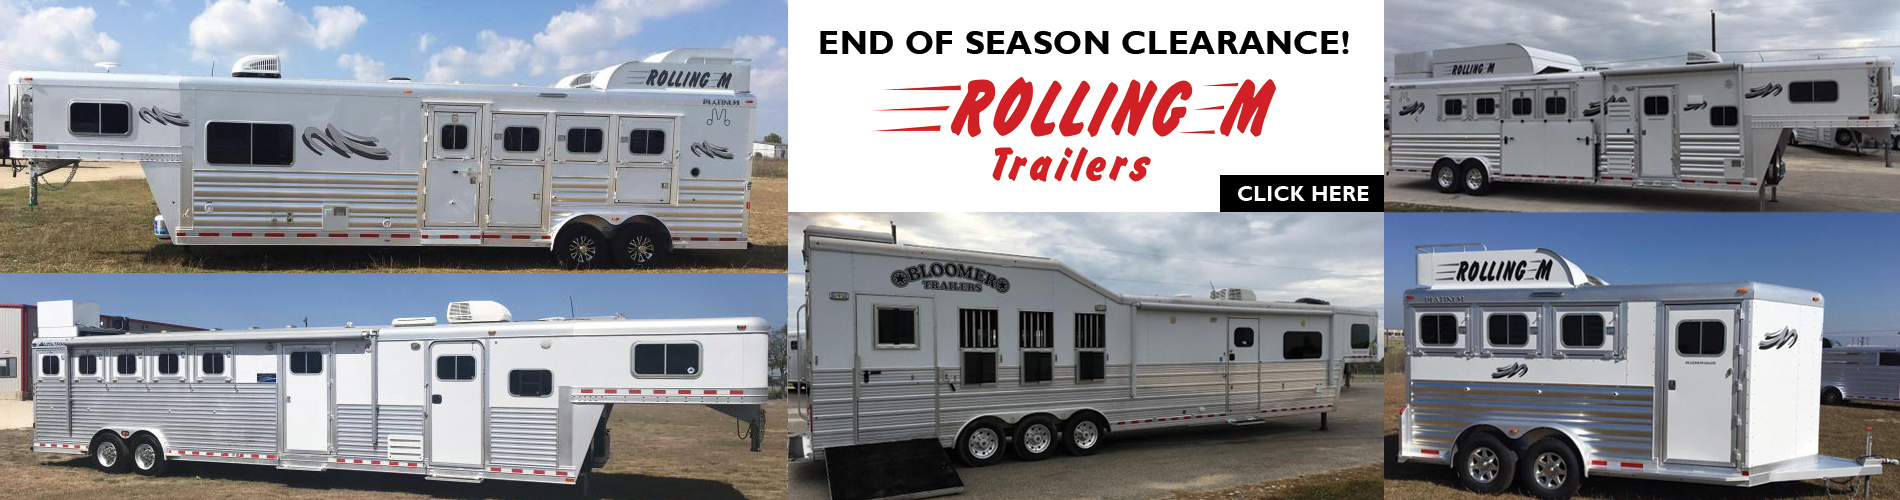 Rolling M Horse Trailers